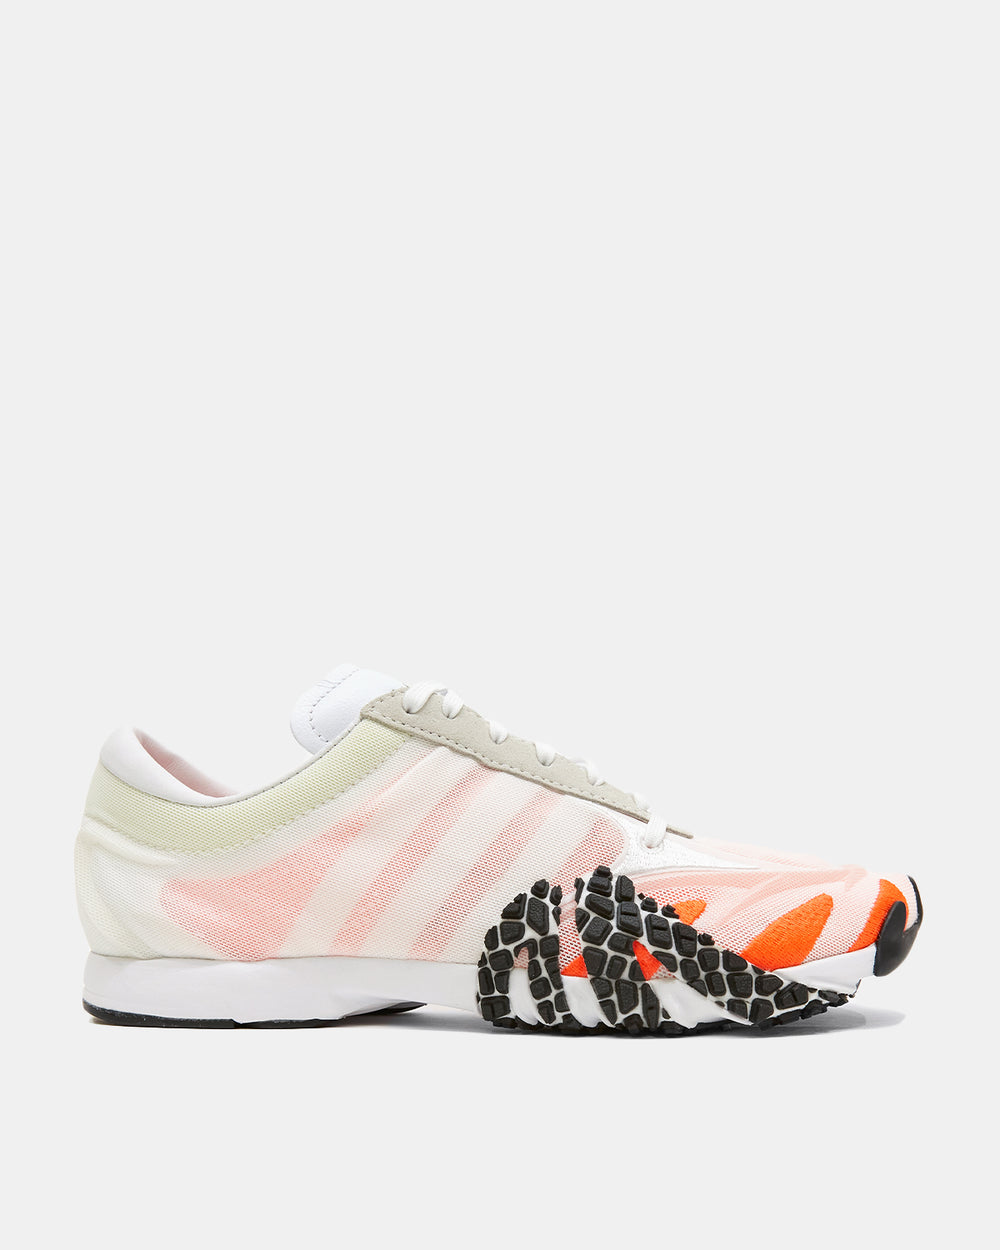 adidas Consortium - Y-3 Adizero Wrap (Cloud White | Solar Orange | Black)